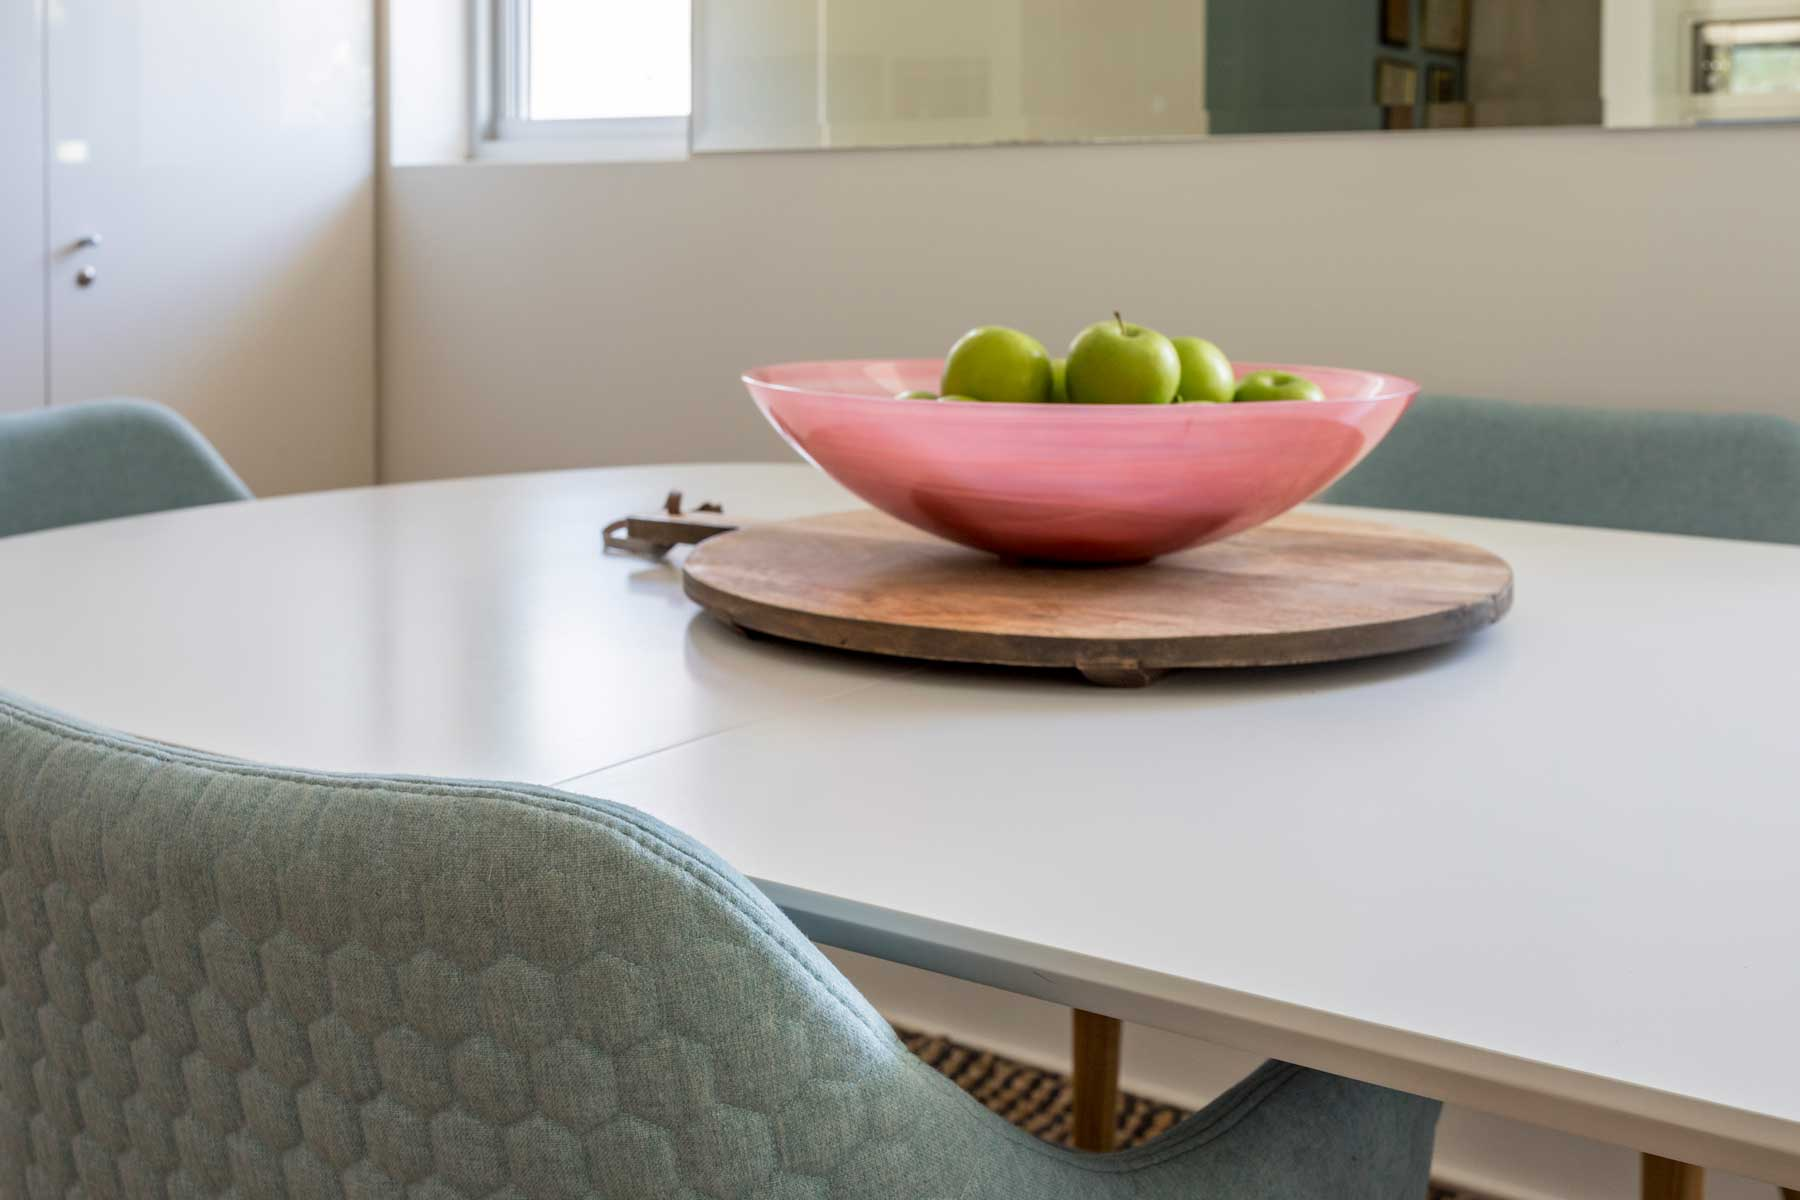 Robyn's vibrant beach apartment - after - fruit bowl